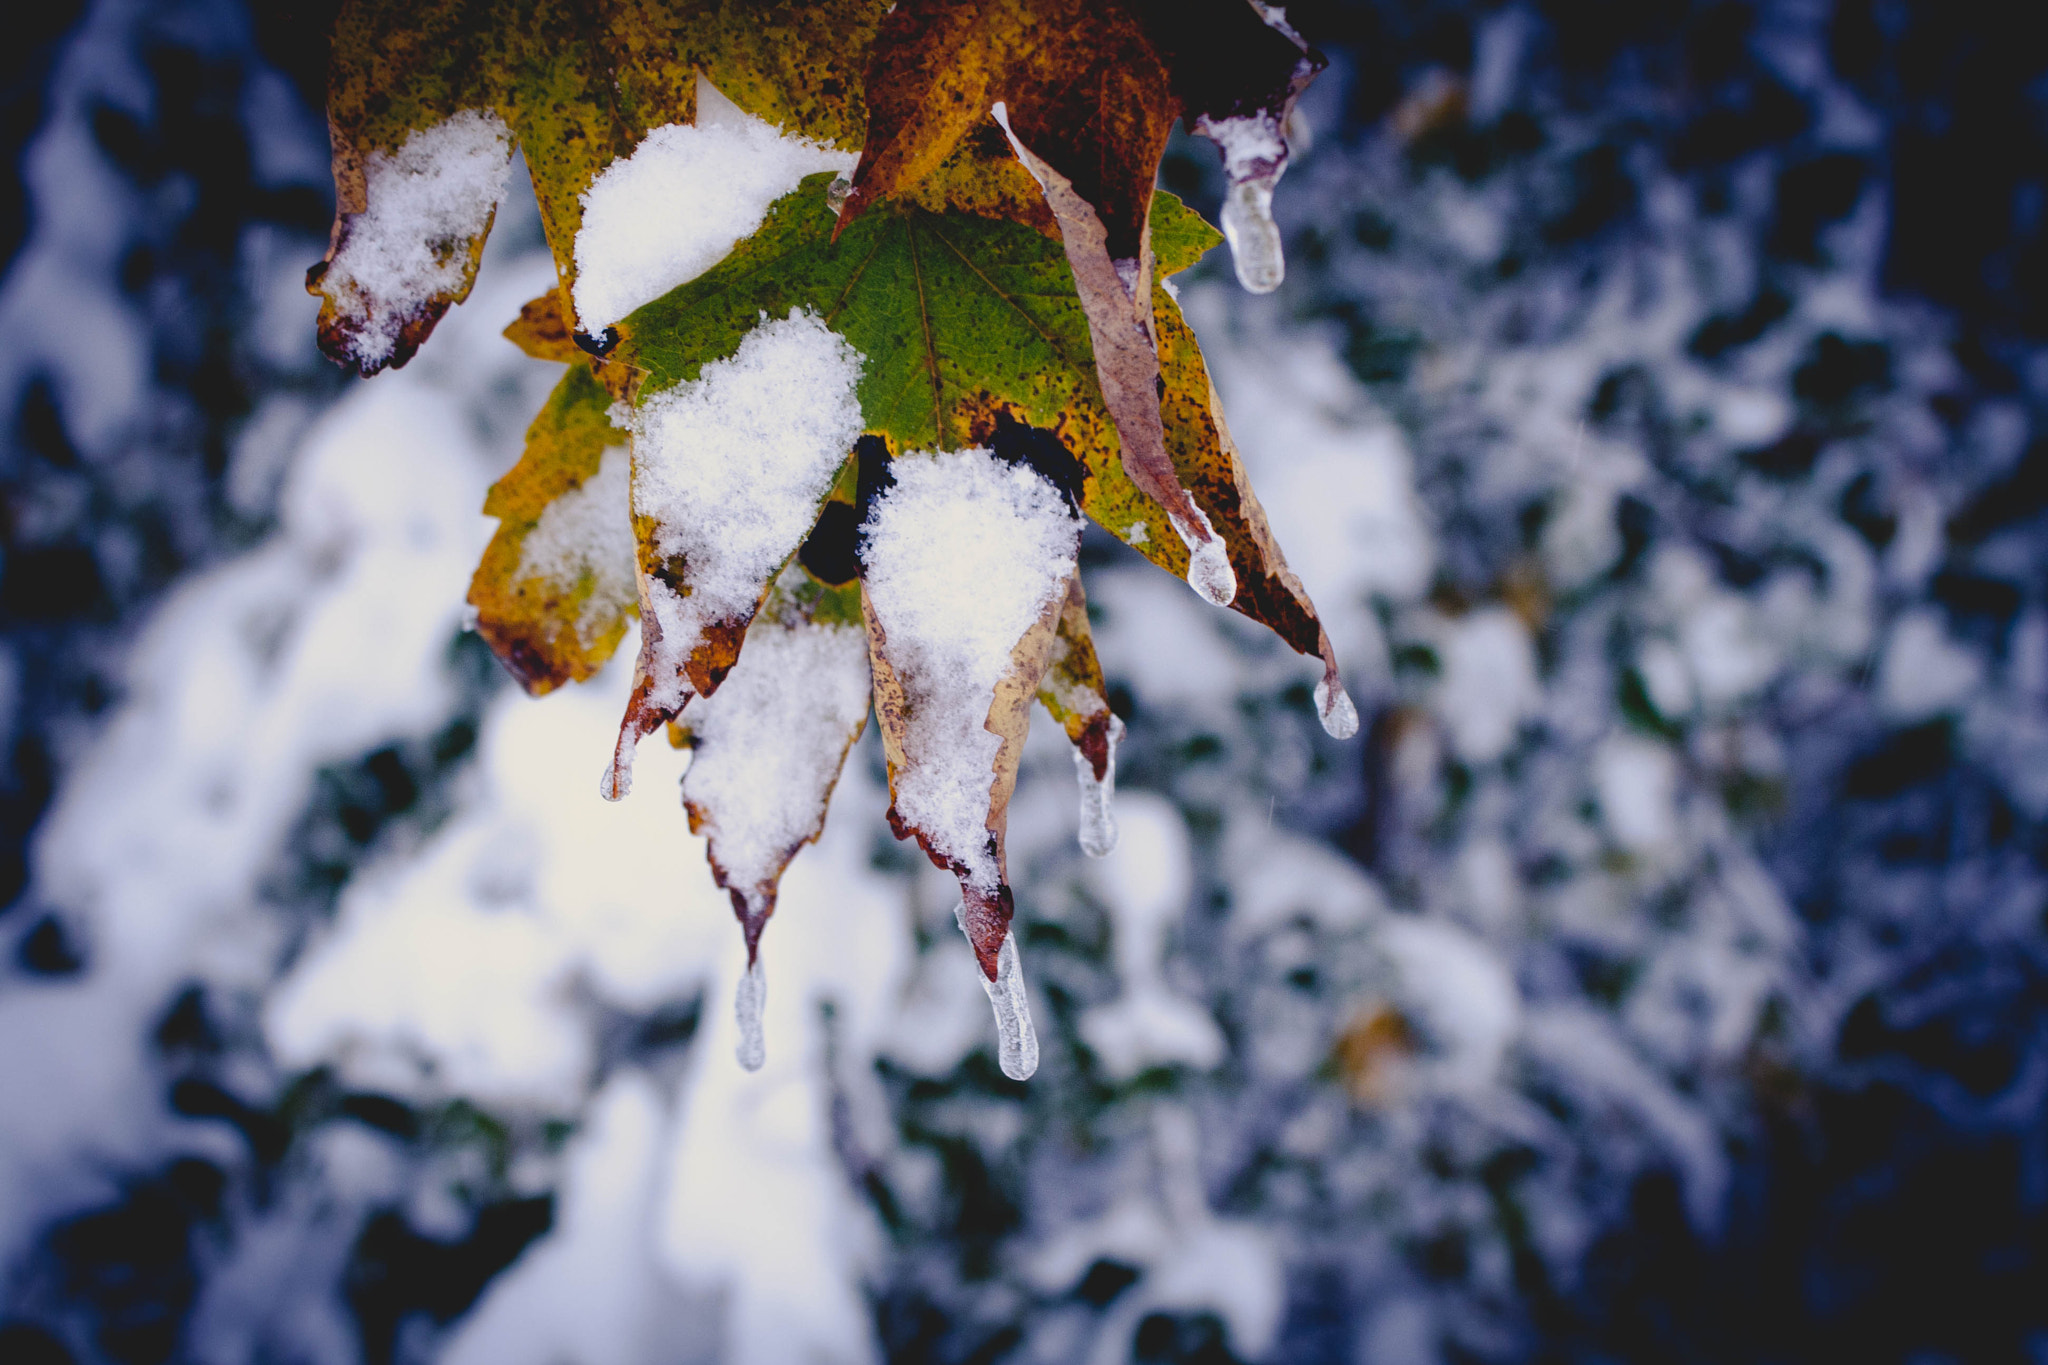 Photograph snow. autumn I by Sven Aeschlimann on 500px